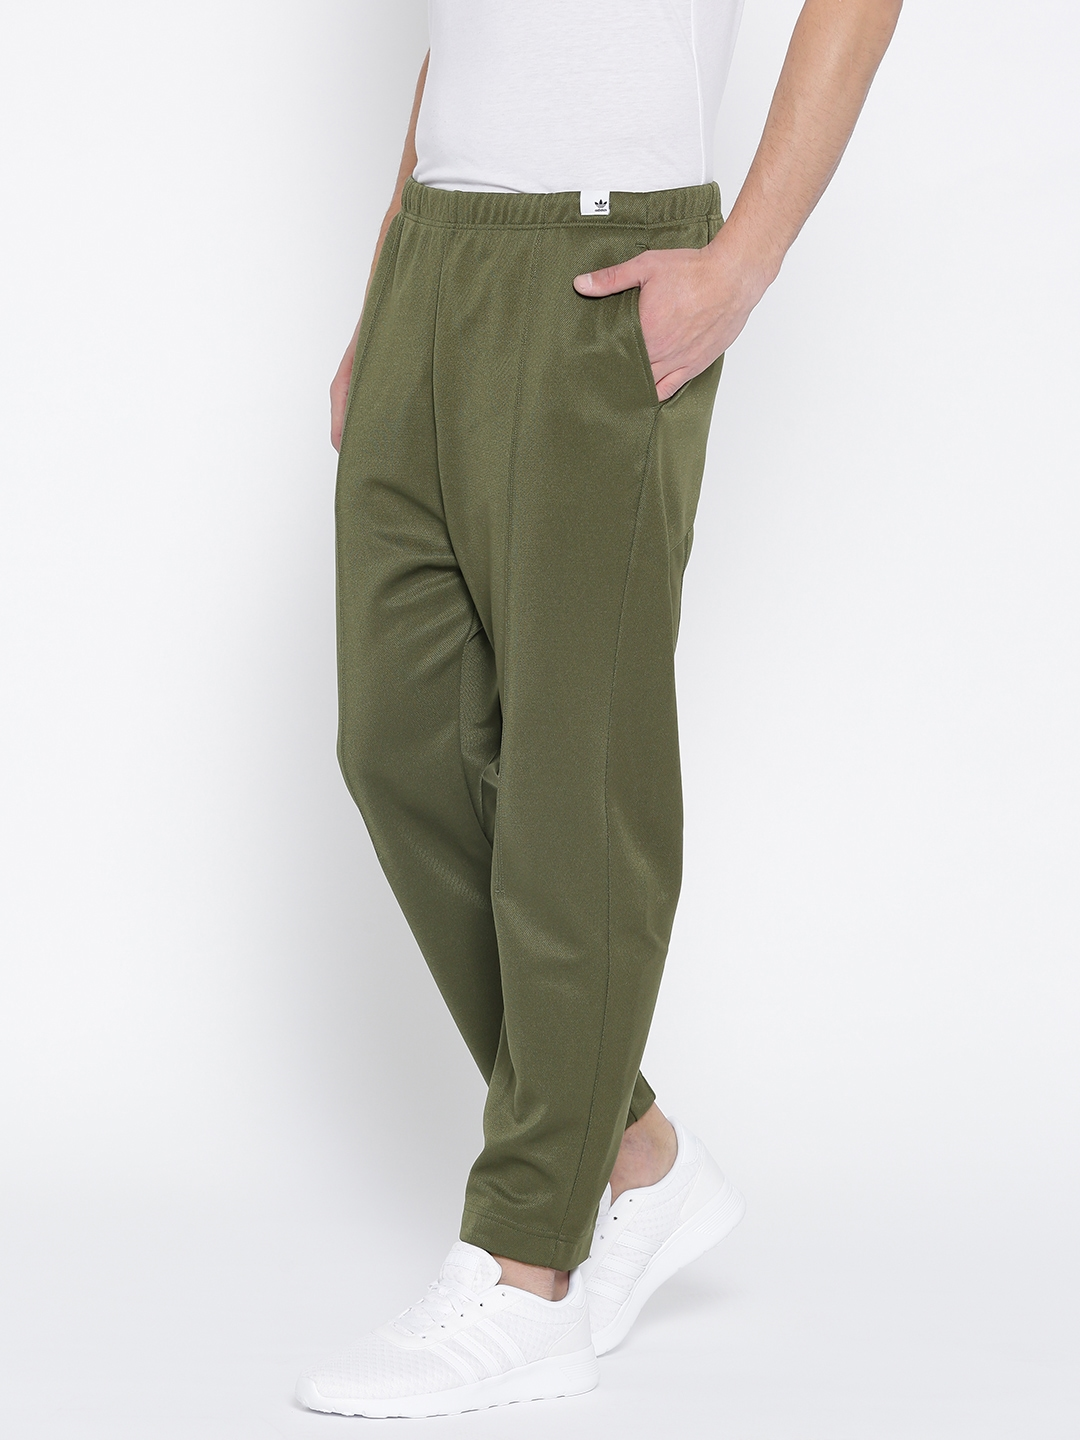 38225fce35c5 Buy ADIDAS Originals Men Olive Green XBYO Track Pants - Track Pants ...